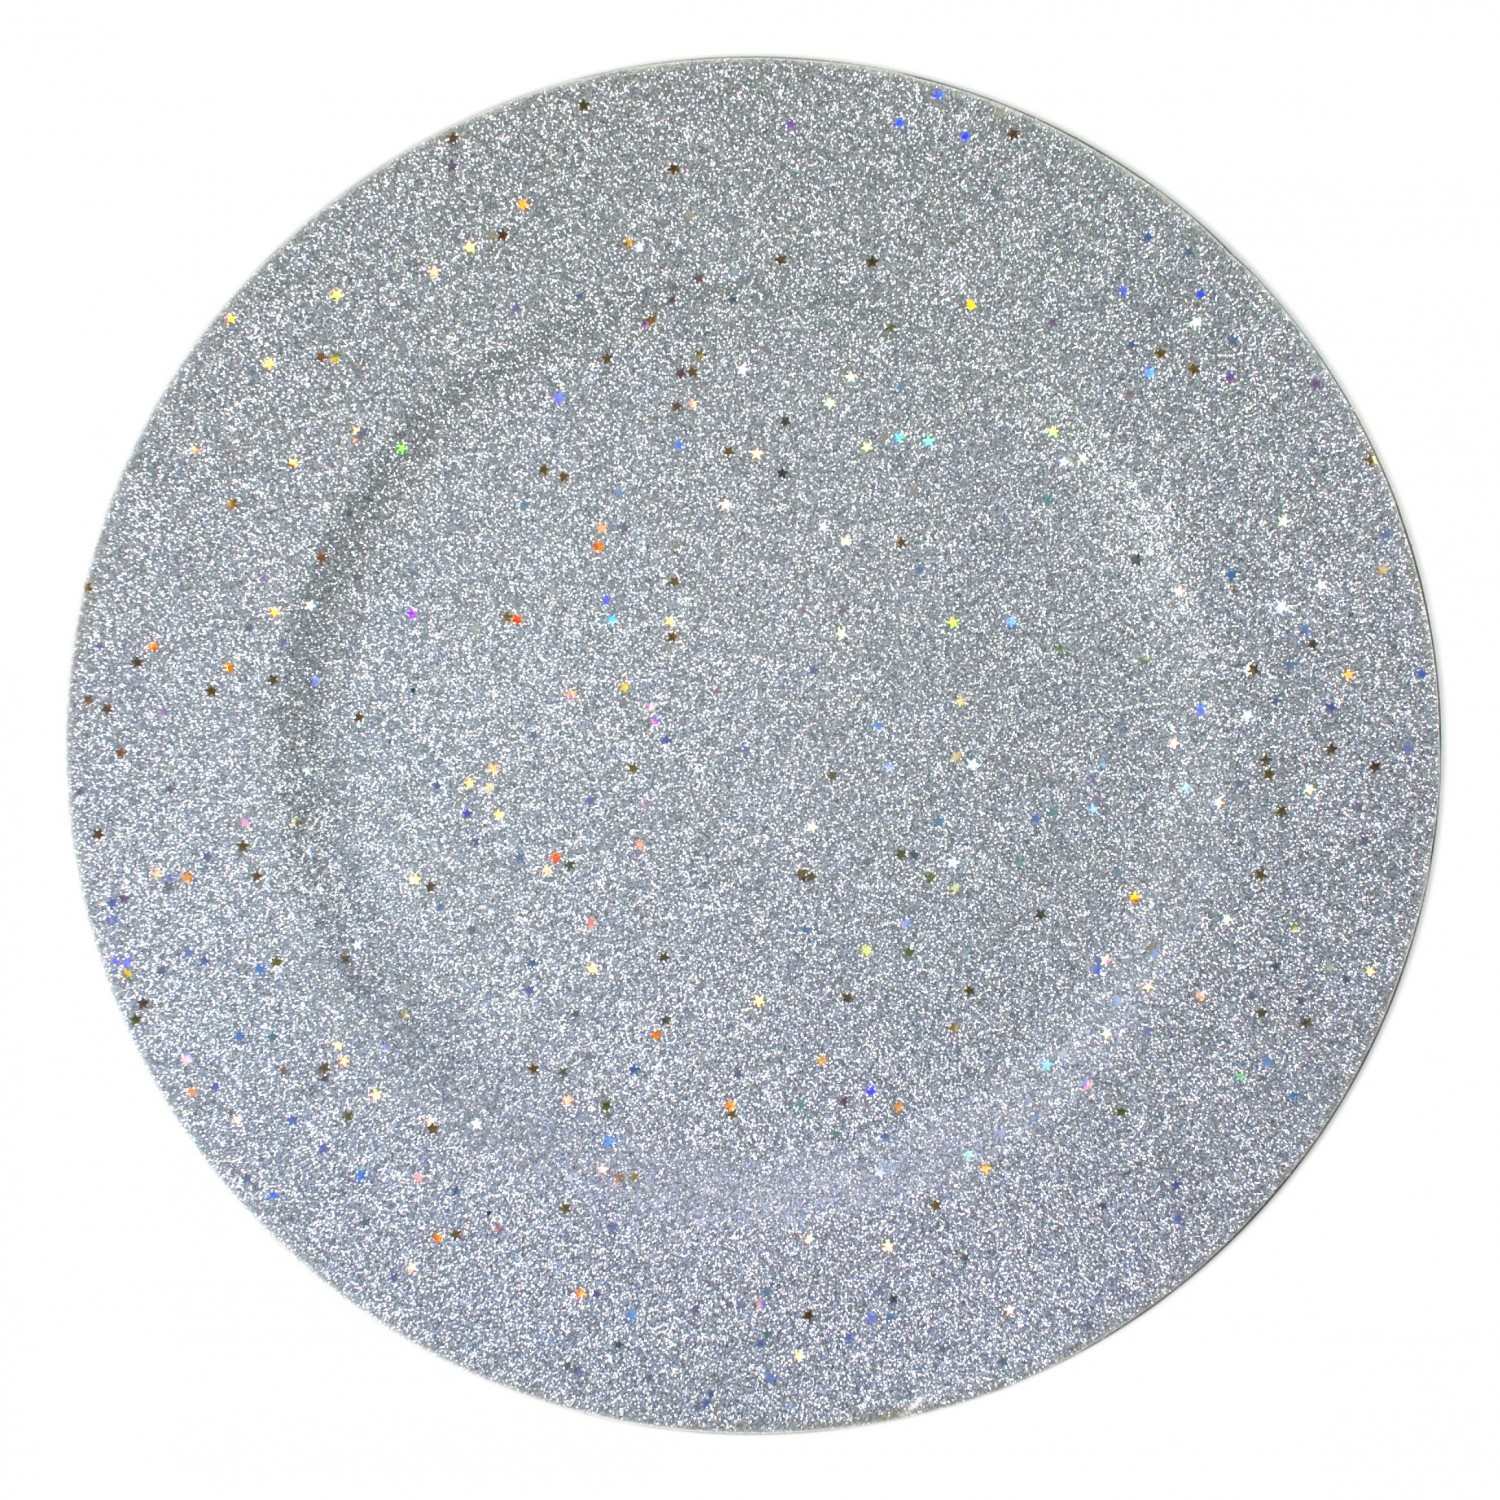 Glitter & Stars Silver Charger Plate 13""